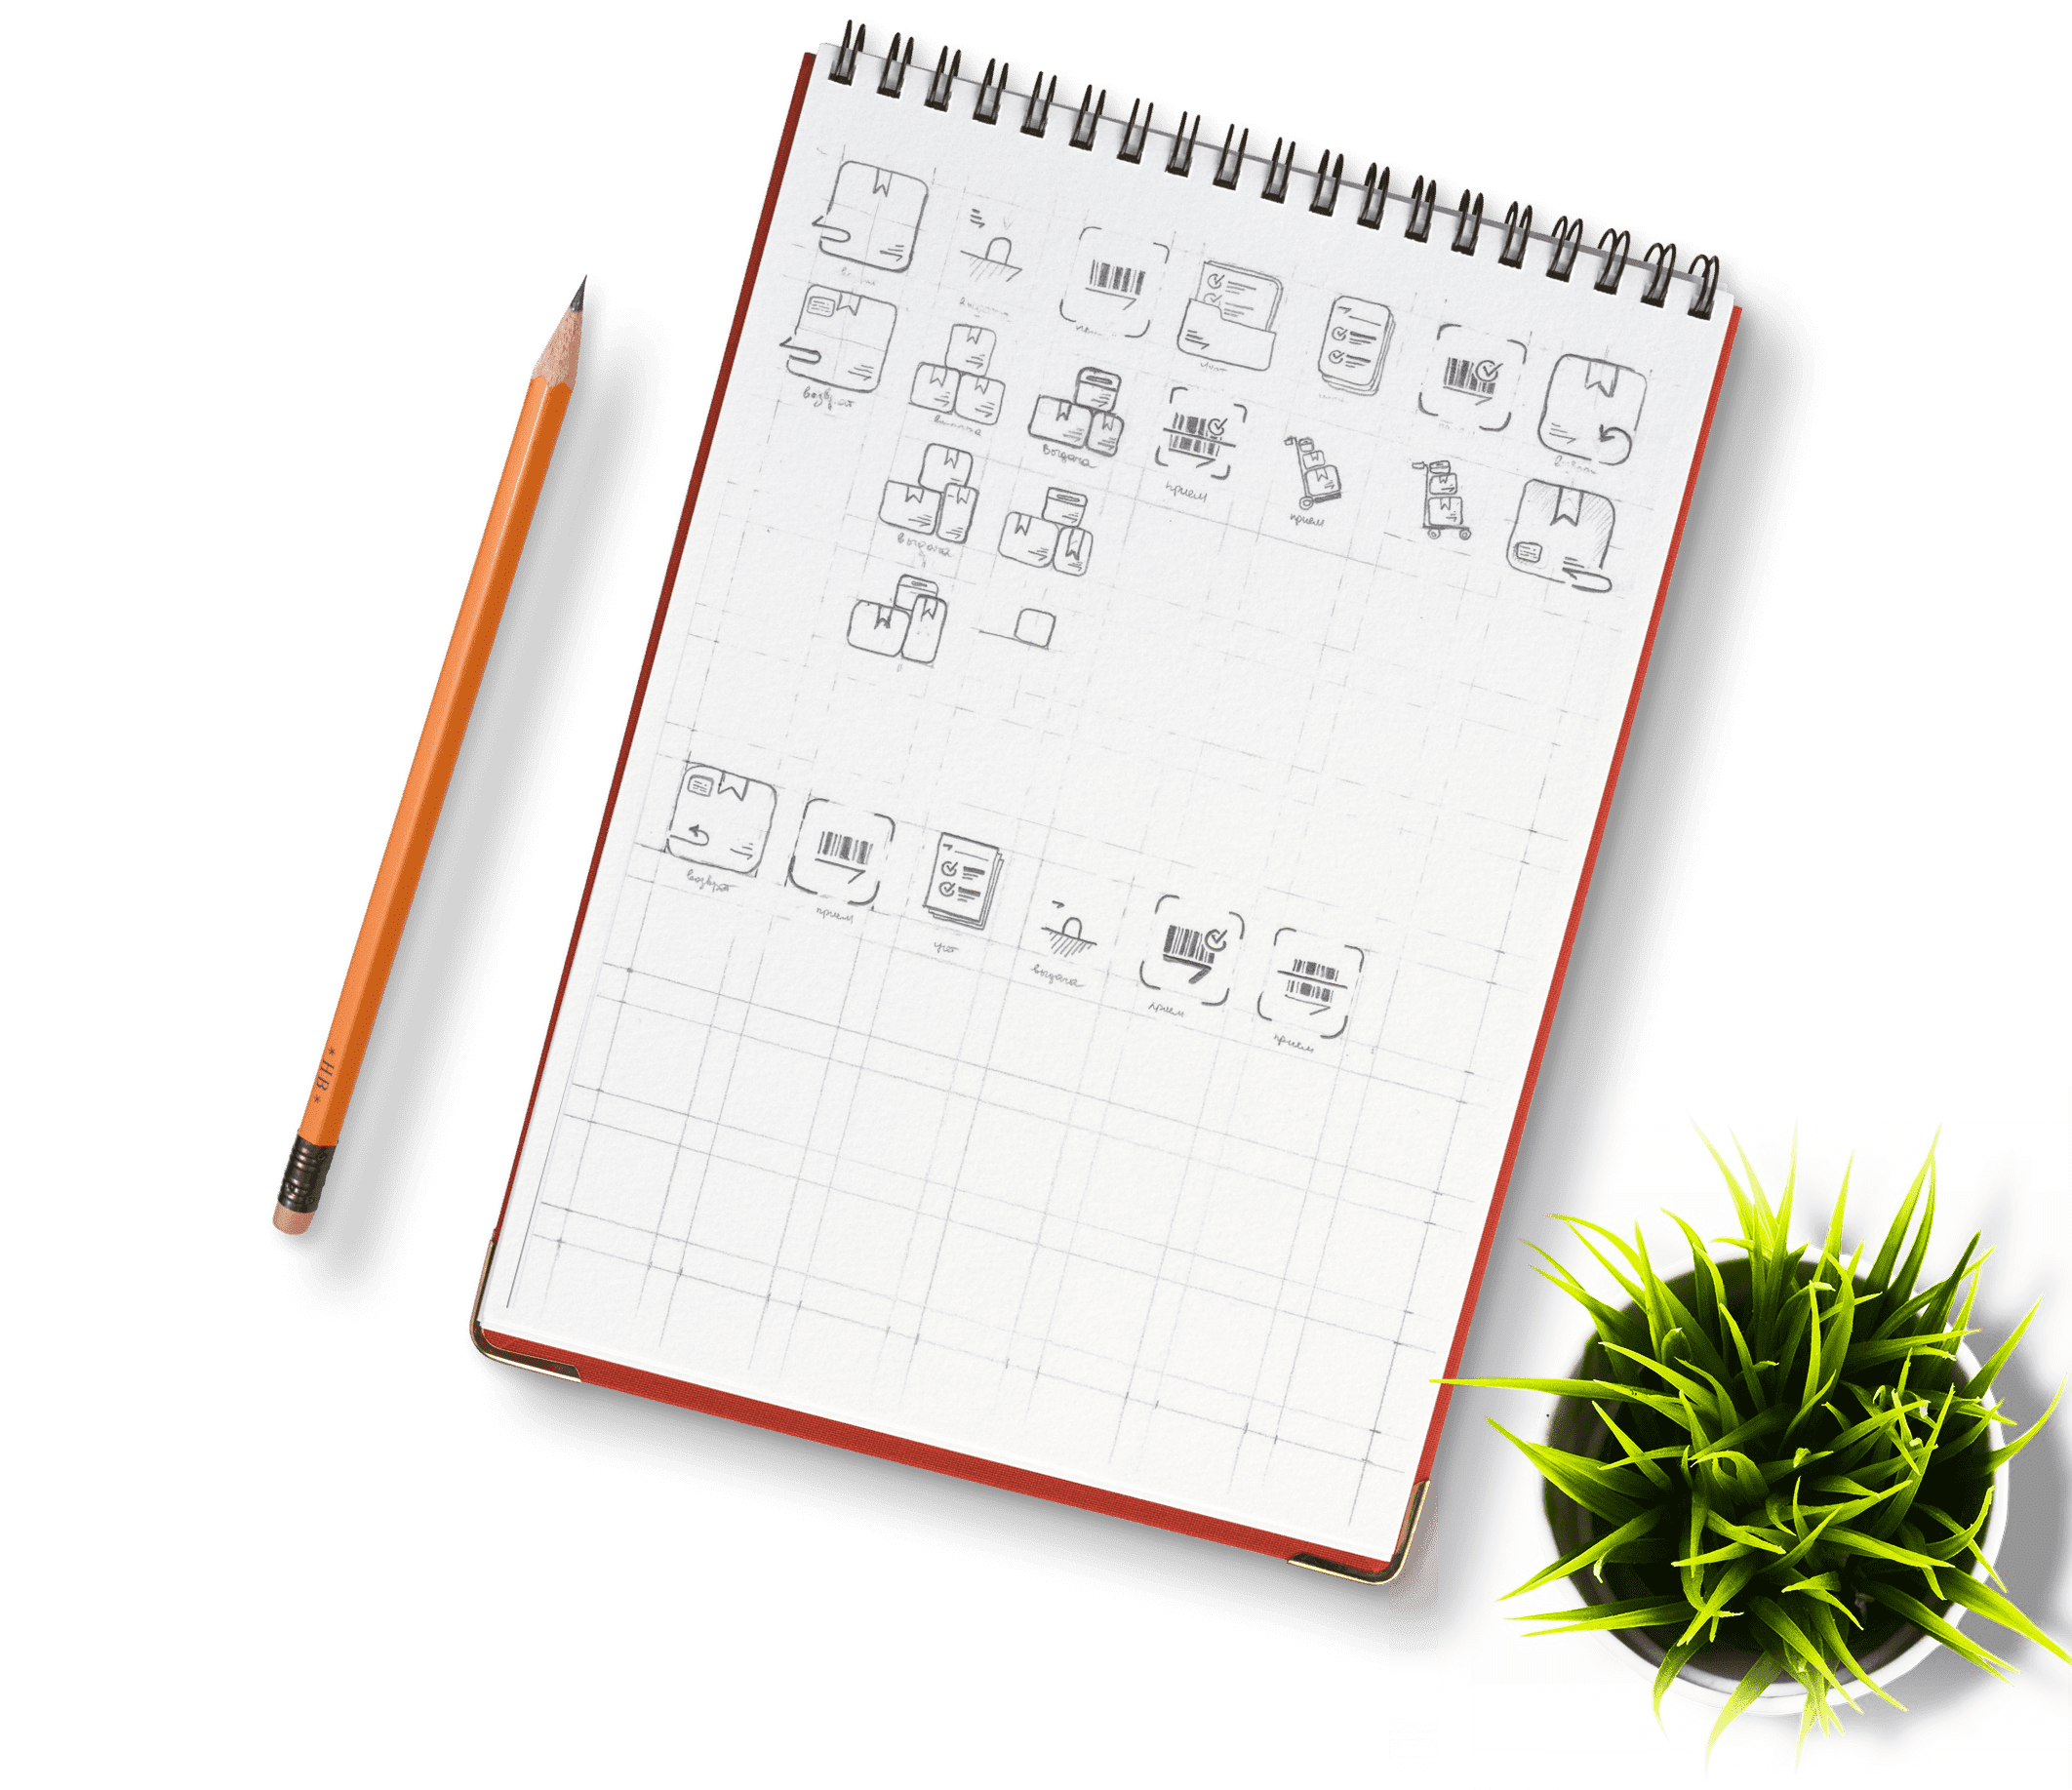 Pen and notebook with plant